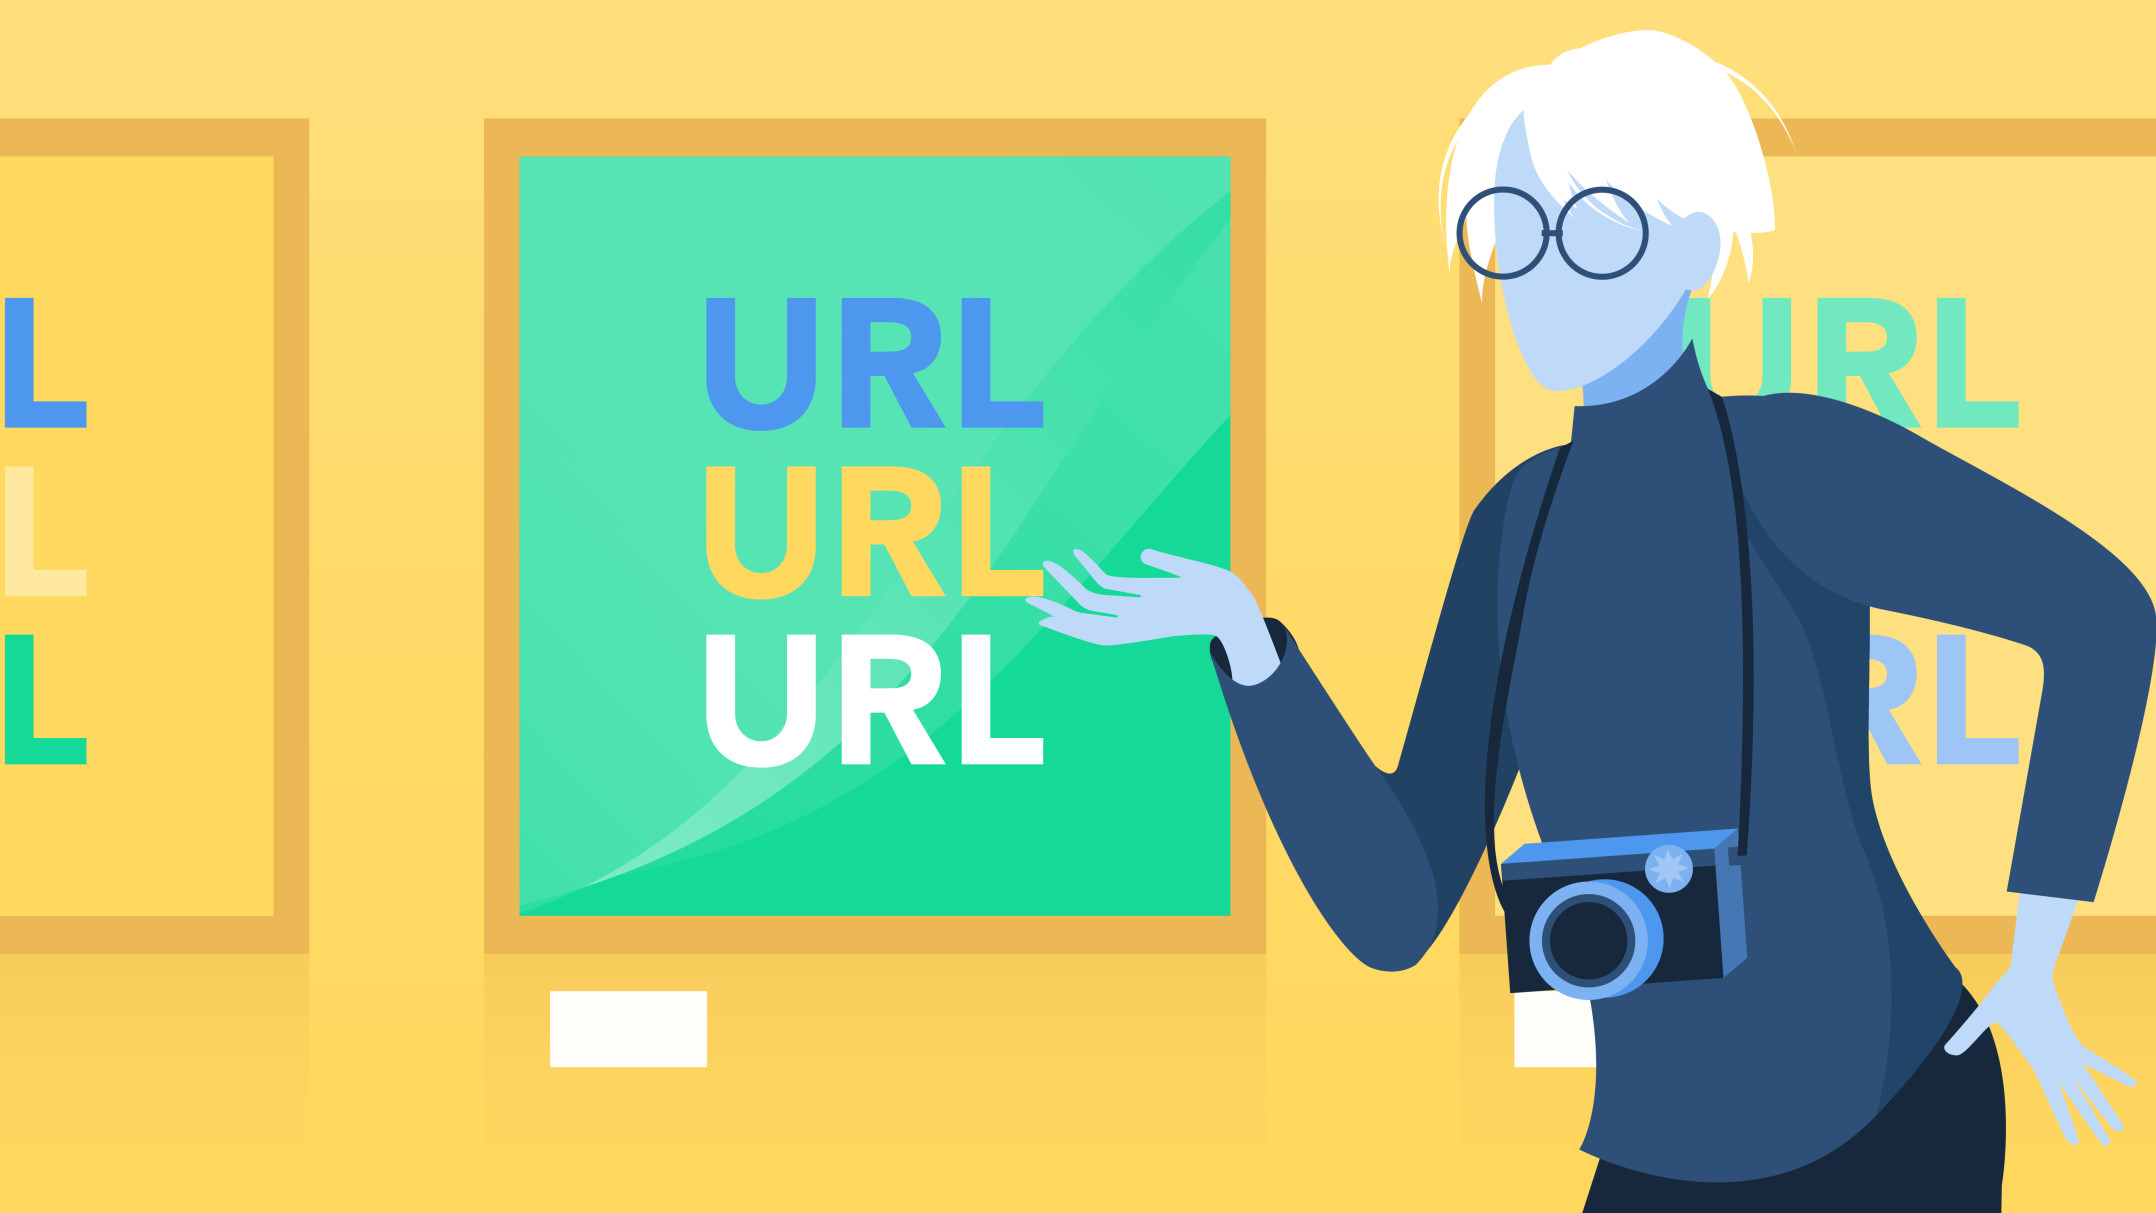 Andy Warhol point to a Gallery of URLs